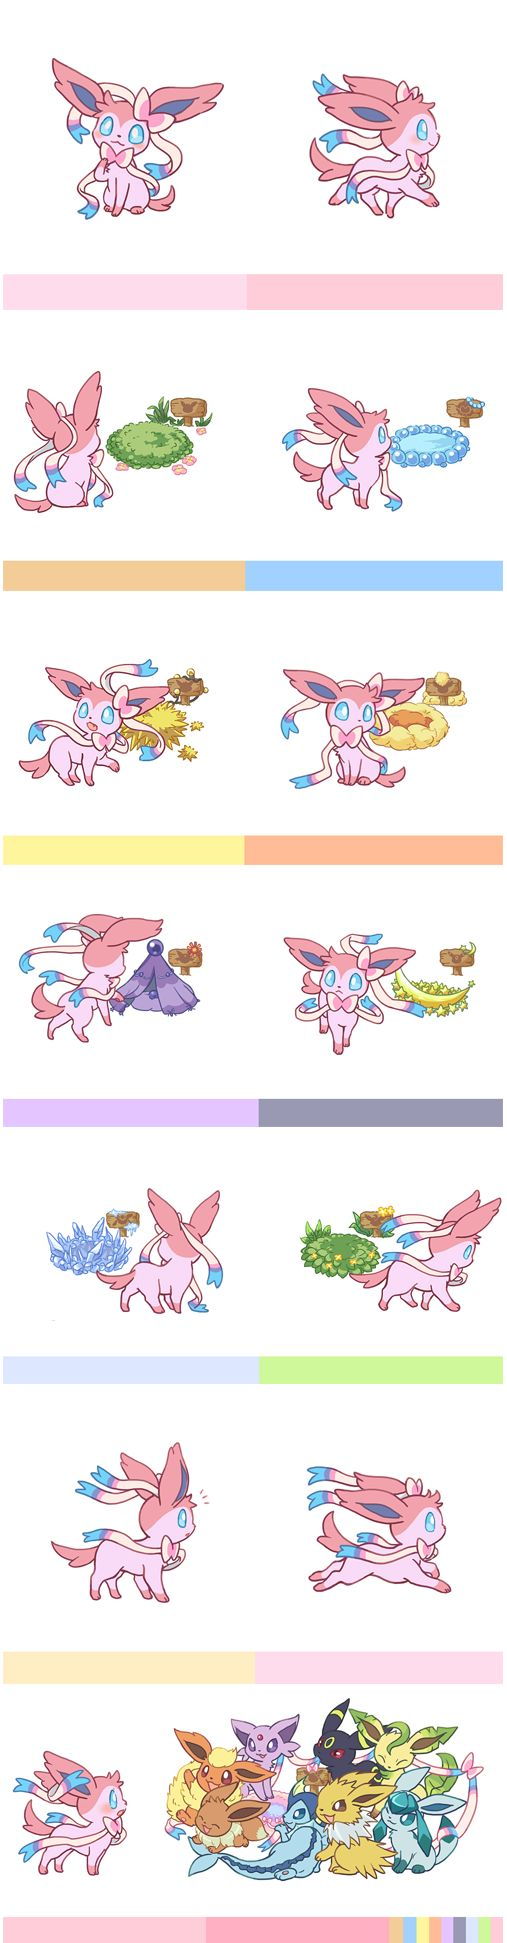 awww! It's a welcoming party for Sylveon!